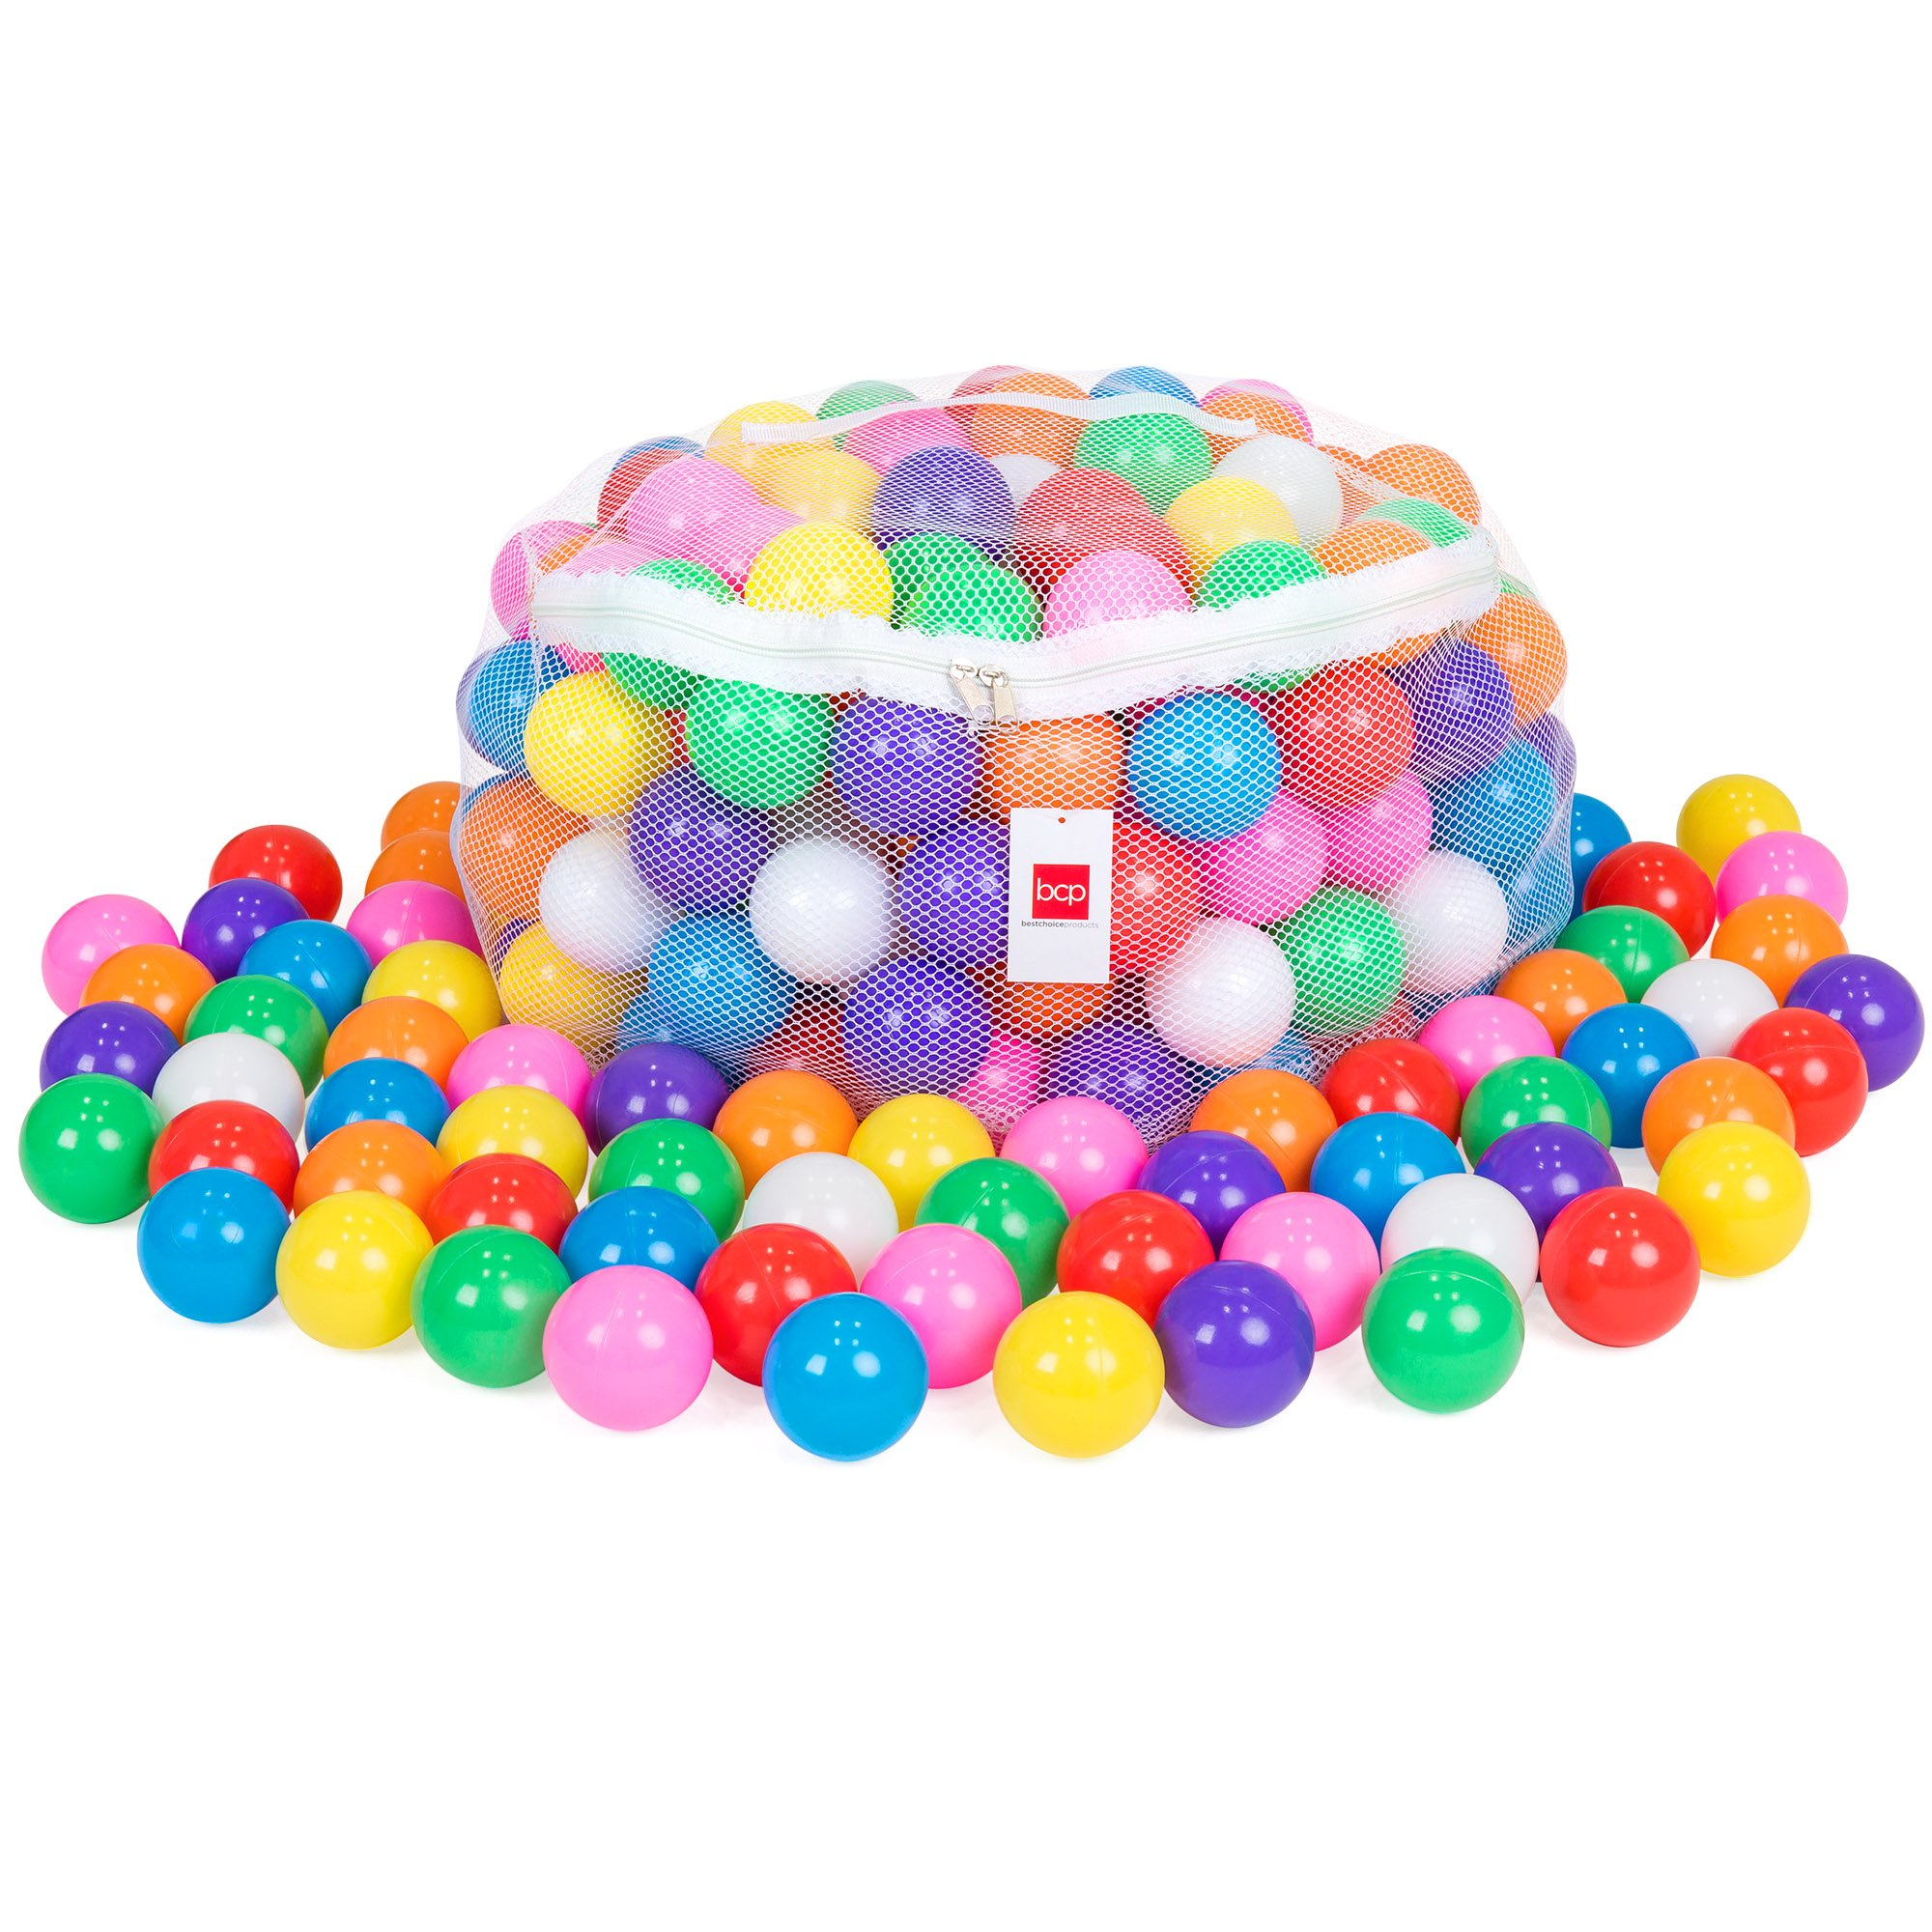 Best Choice Products Pack of 200 BPA-Free Plastic Pit Balls w/ Zipper Mesh Storage Bag, Multicolor by Best Choice Products